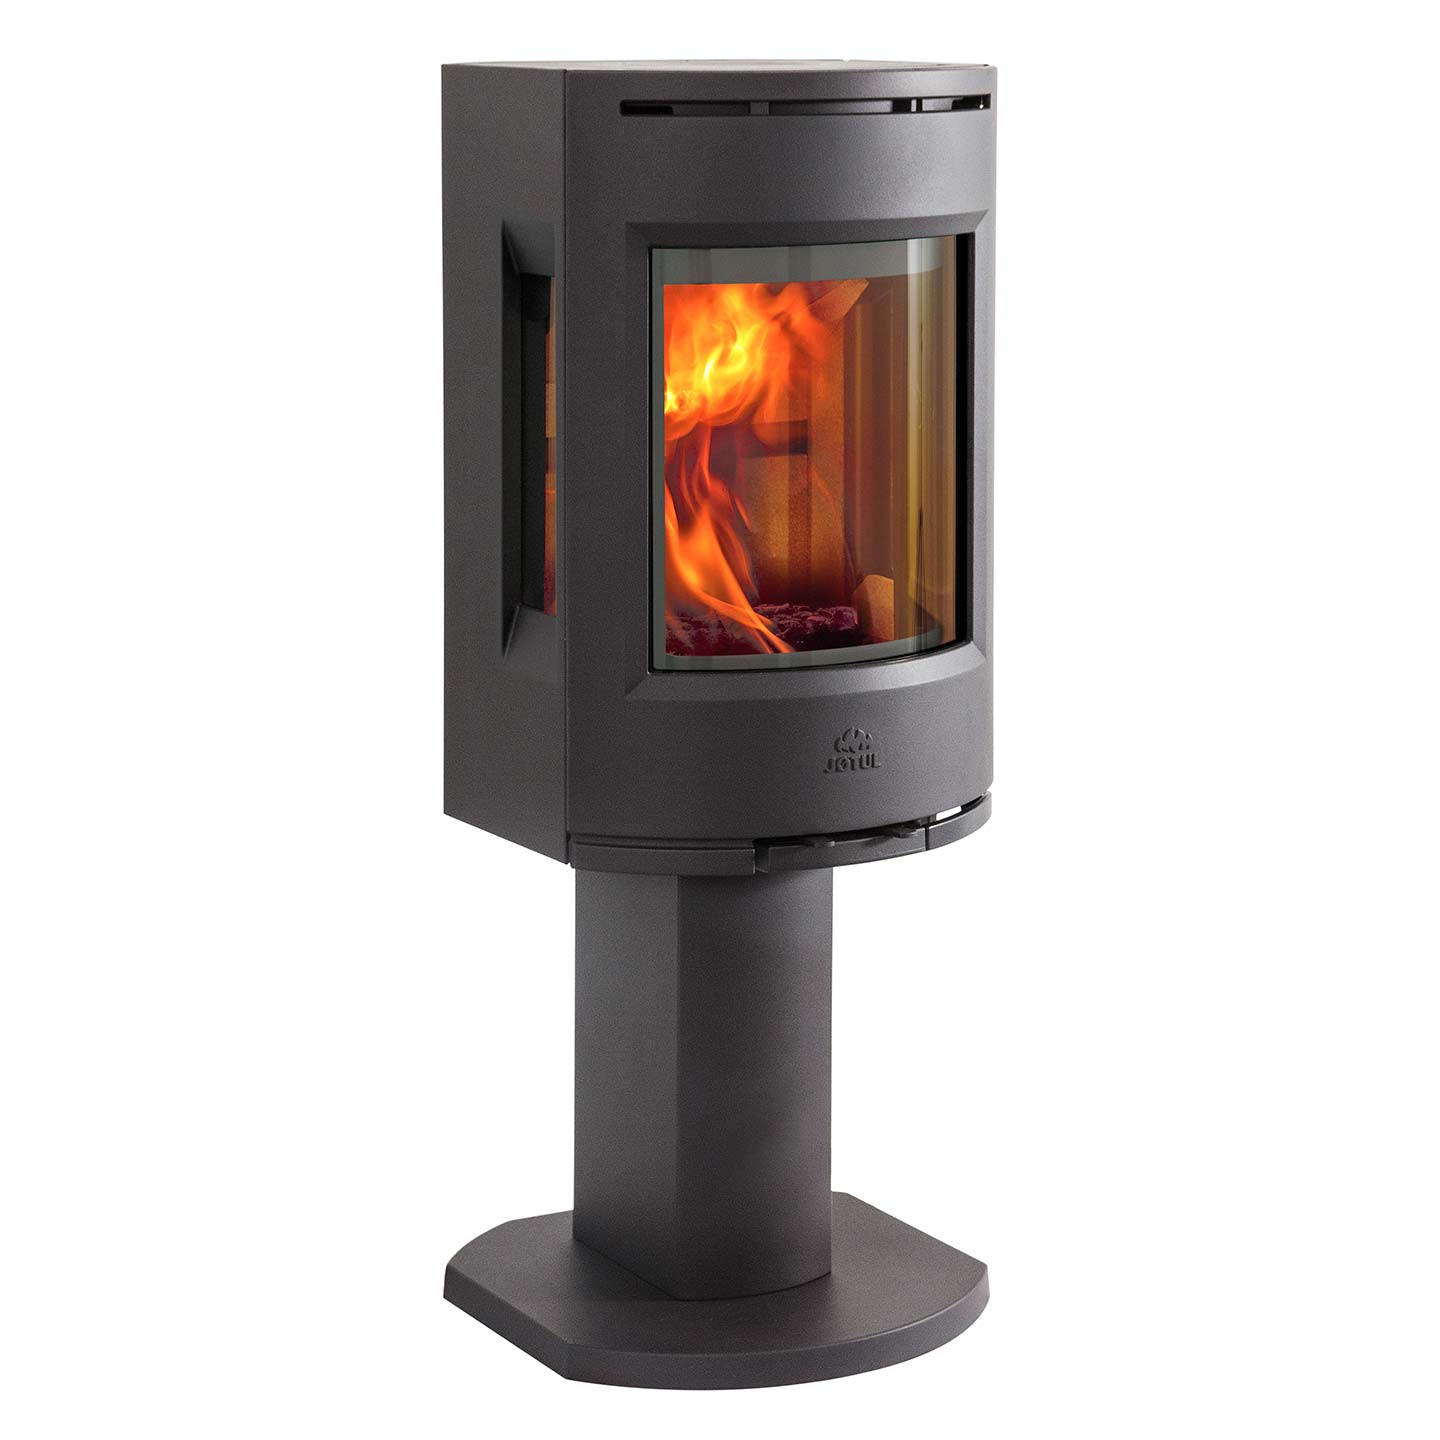 Jotul F137 Wood Burning Stove The Stove Site Approved